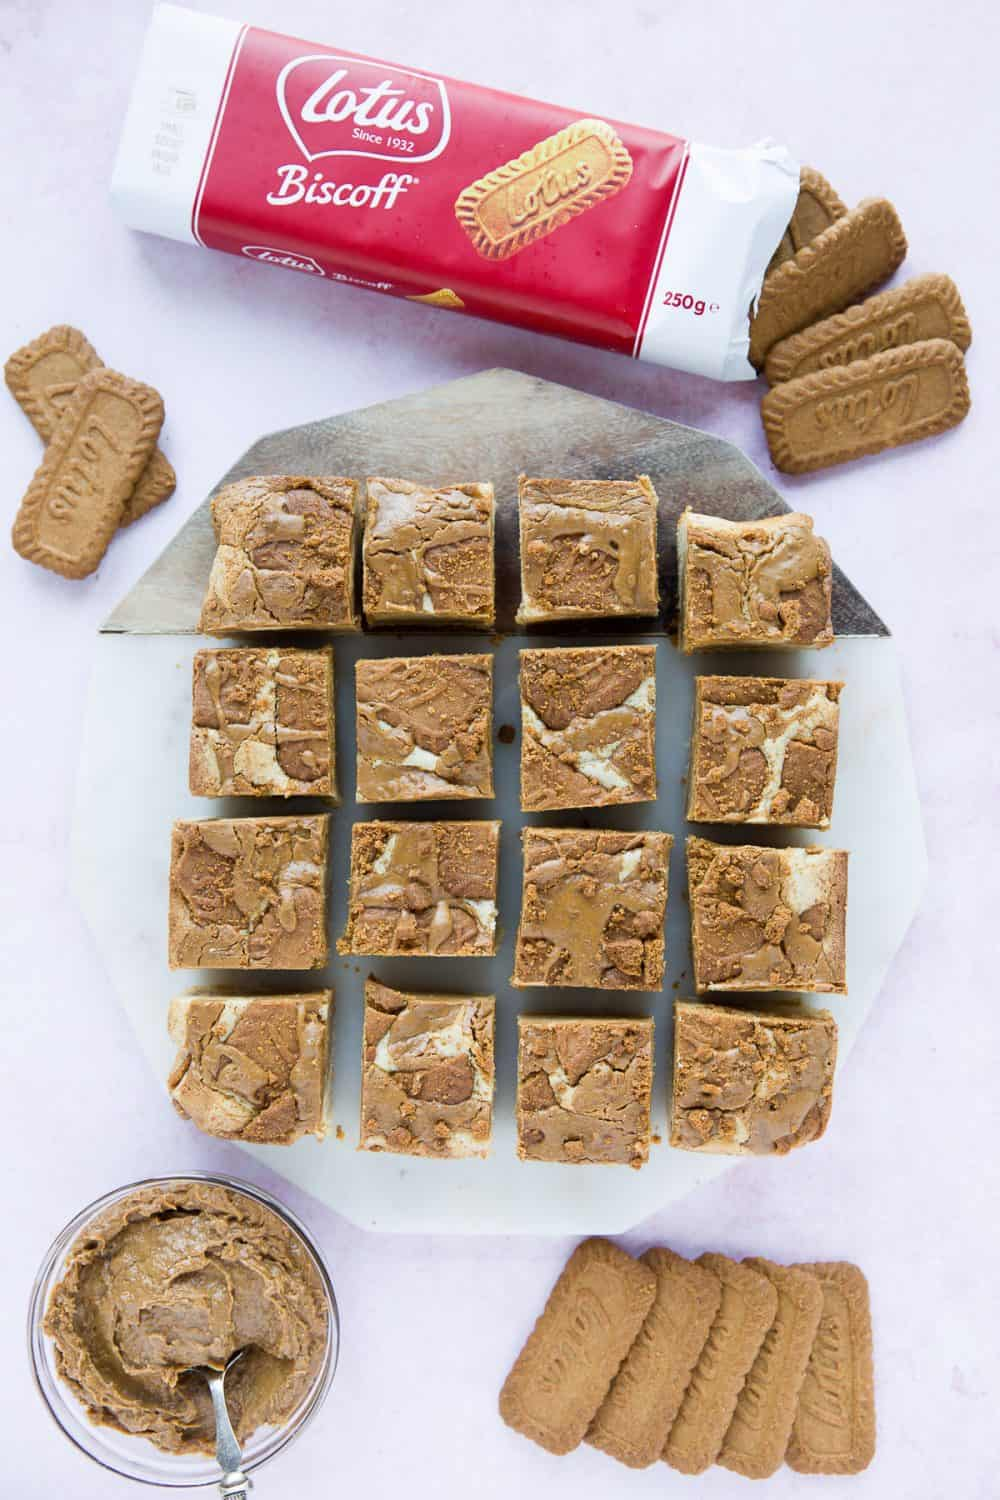 Lotus Biscoff and White Chocolate Blondies cut into 12 equal squares surrounded by an open packet of Lotus biscuits and some biscoff spread in a bowl.